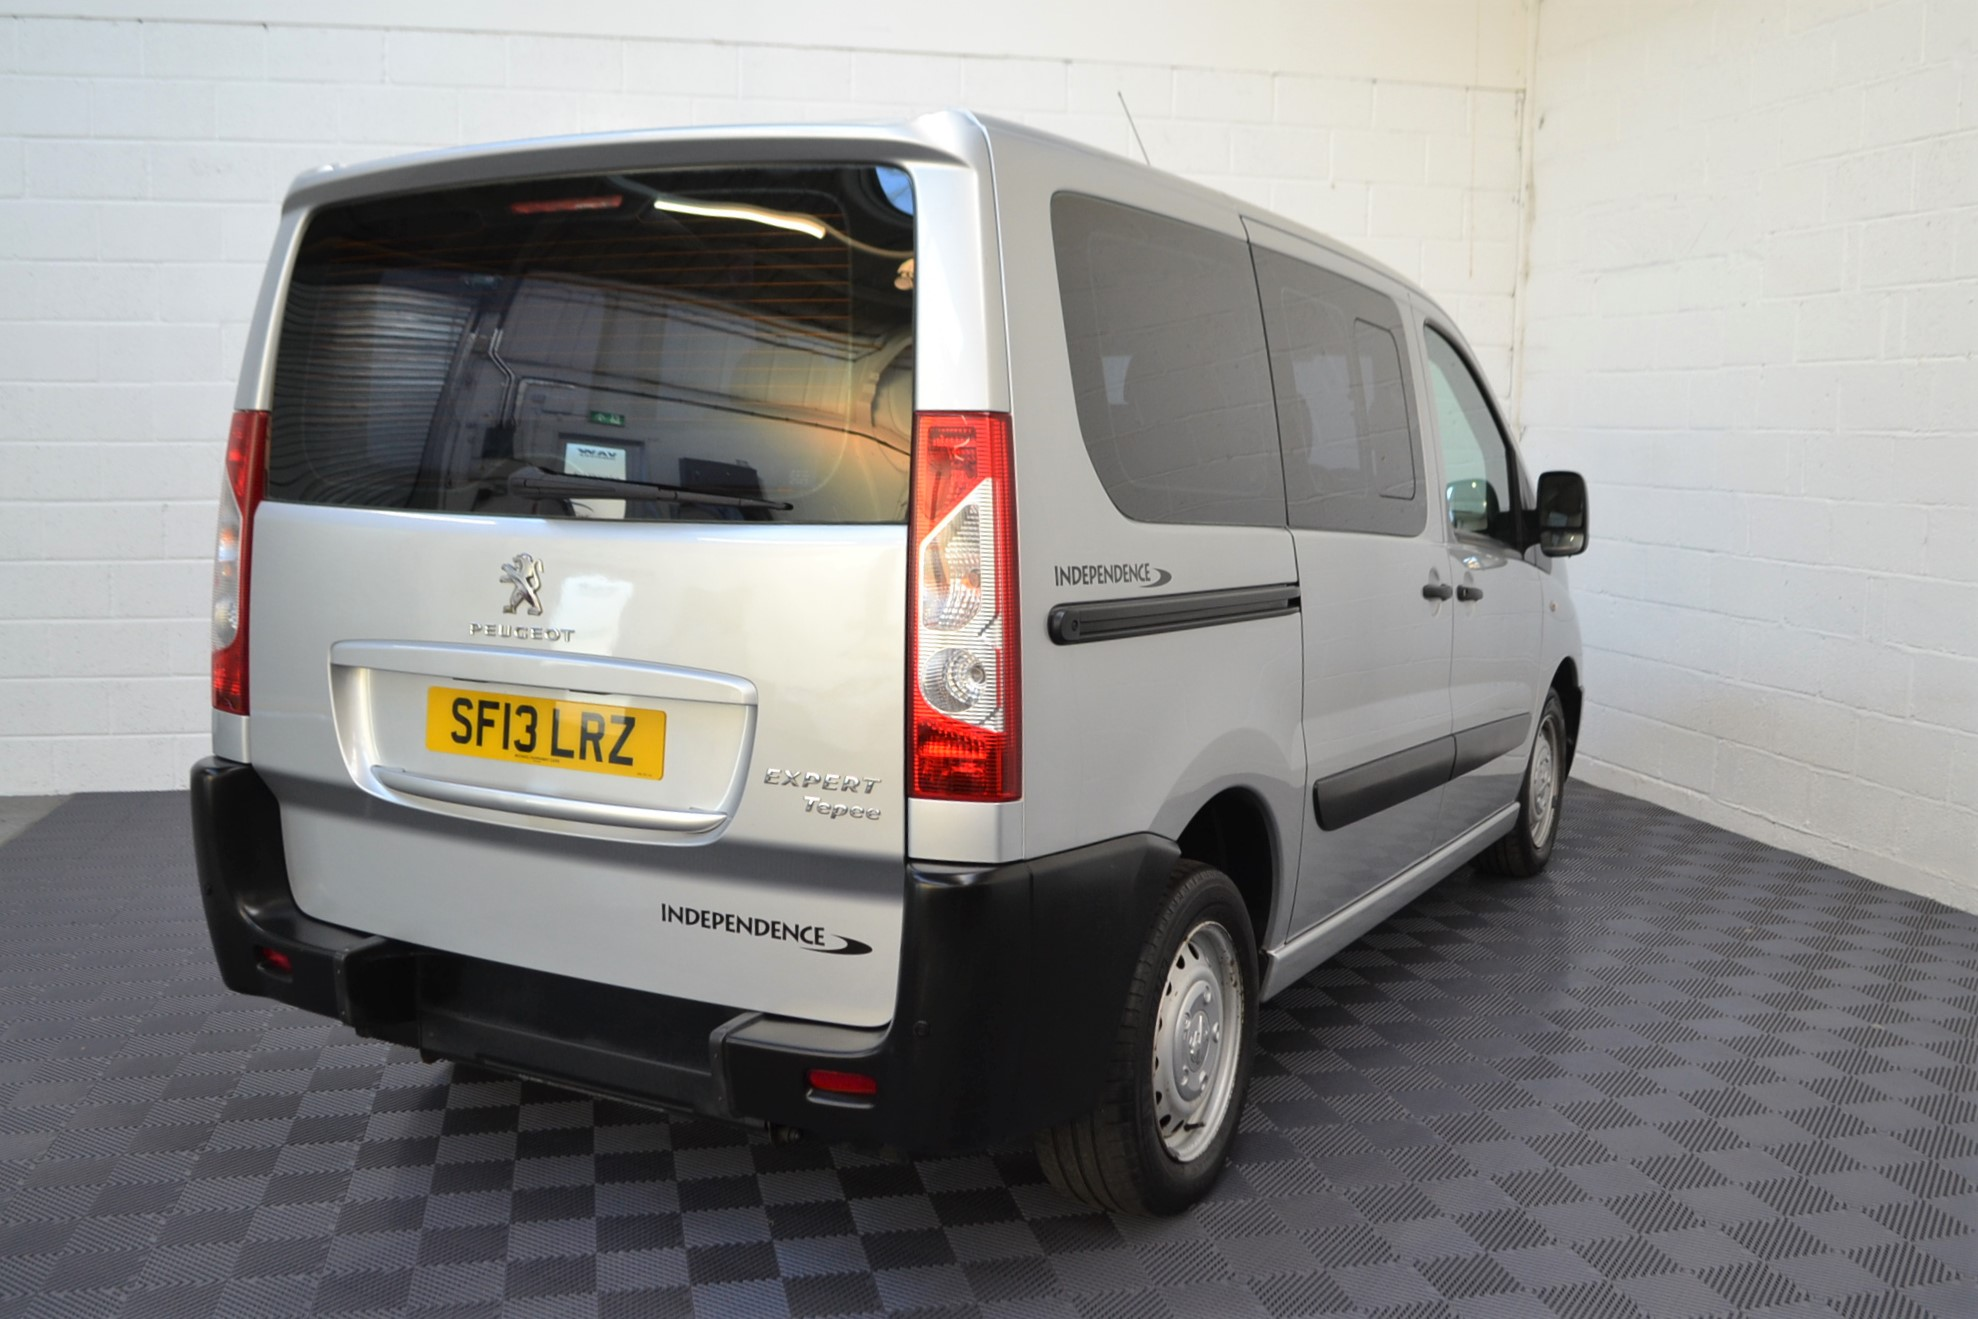 Disabled Cars For Sale Bristol Wheelchair Accessible Vehicles Used For Sale Somerset Devon Dorset Bath Peugeot Expert SF13 LRZ 6